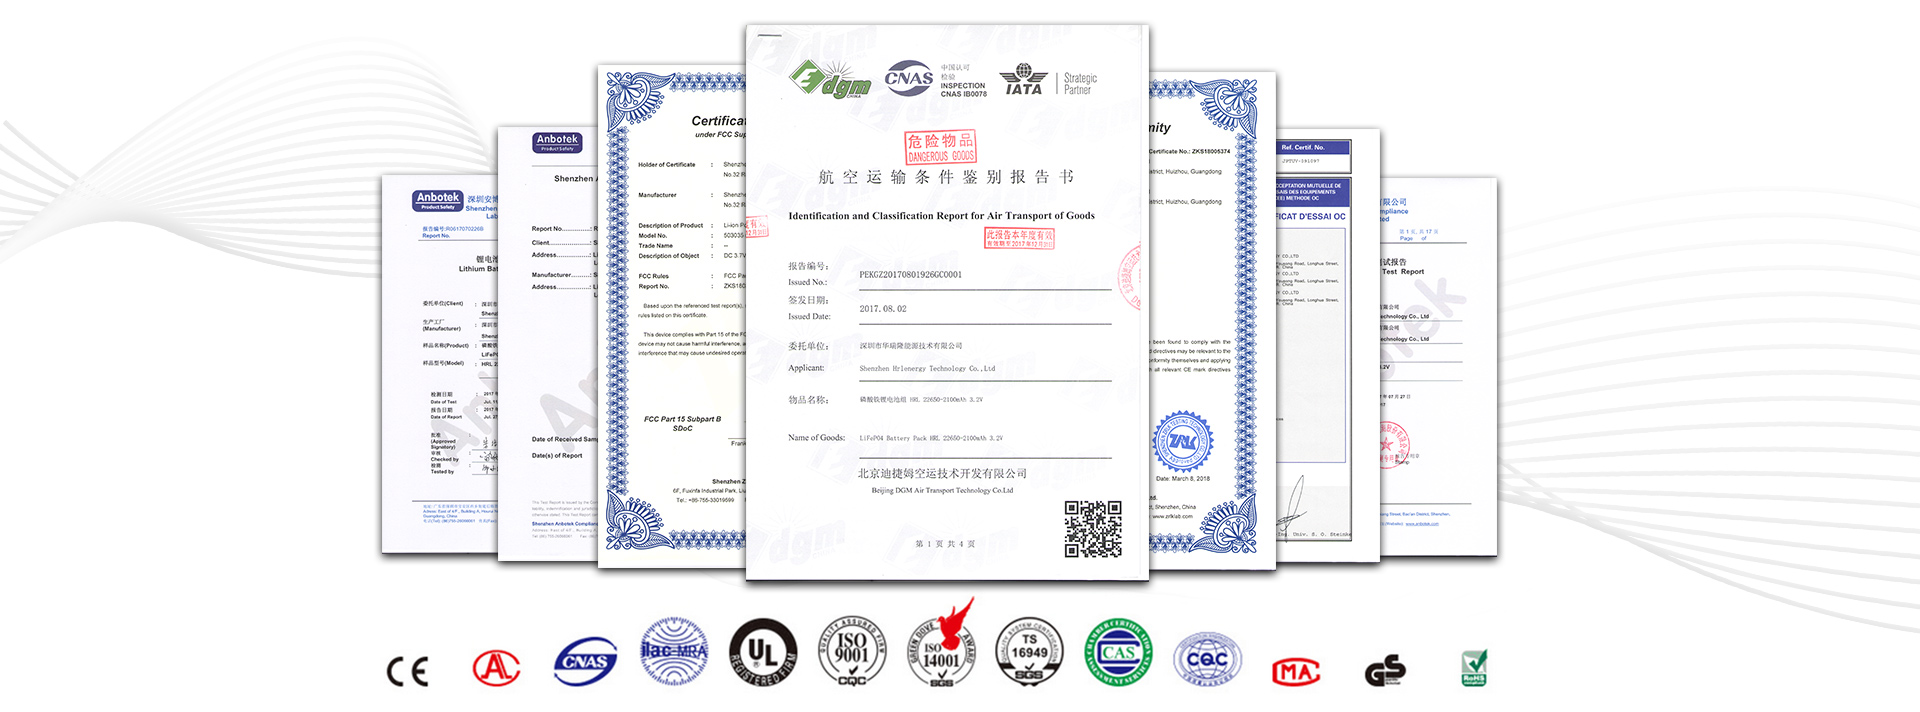 LiPo Rechargeable Batteries of kinds certification